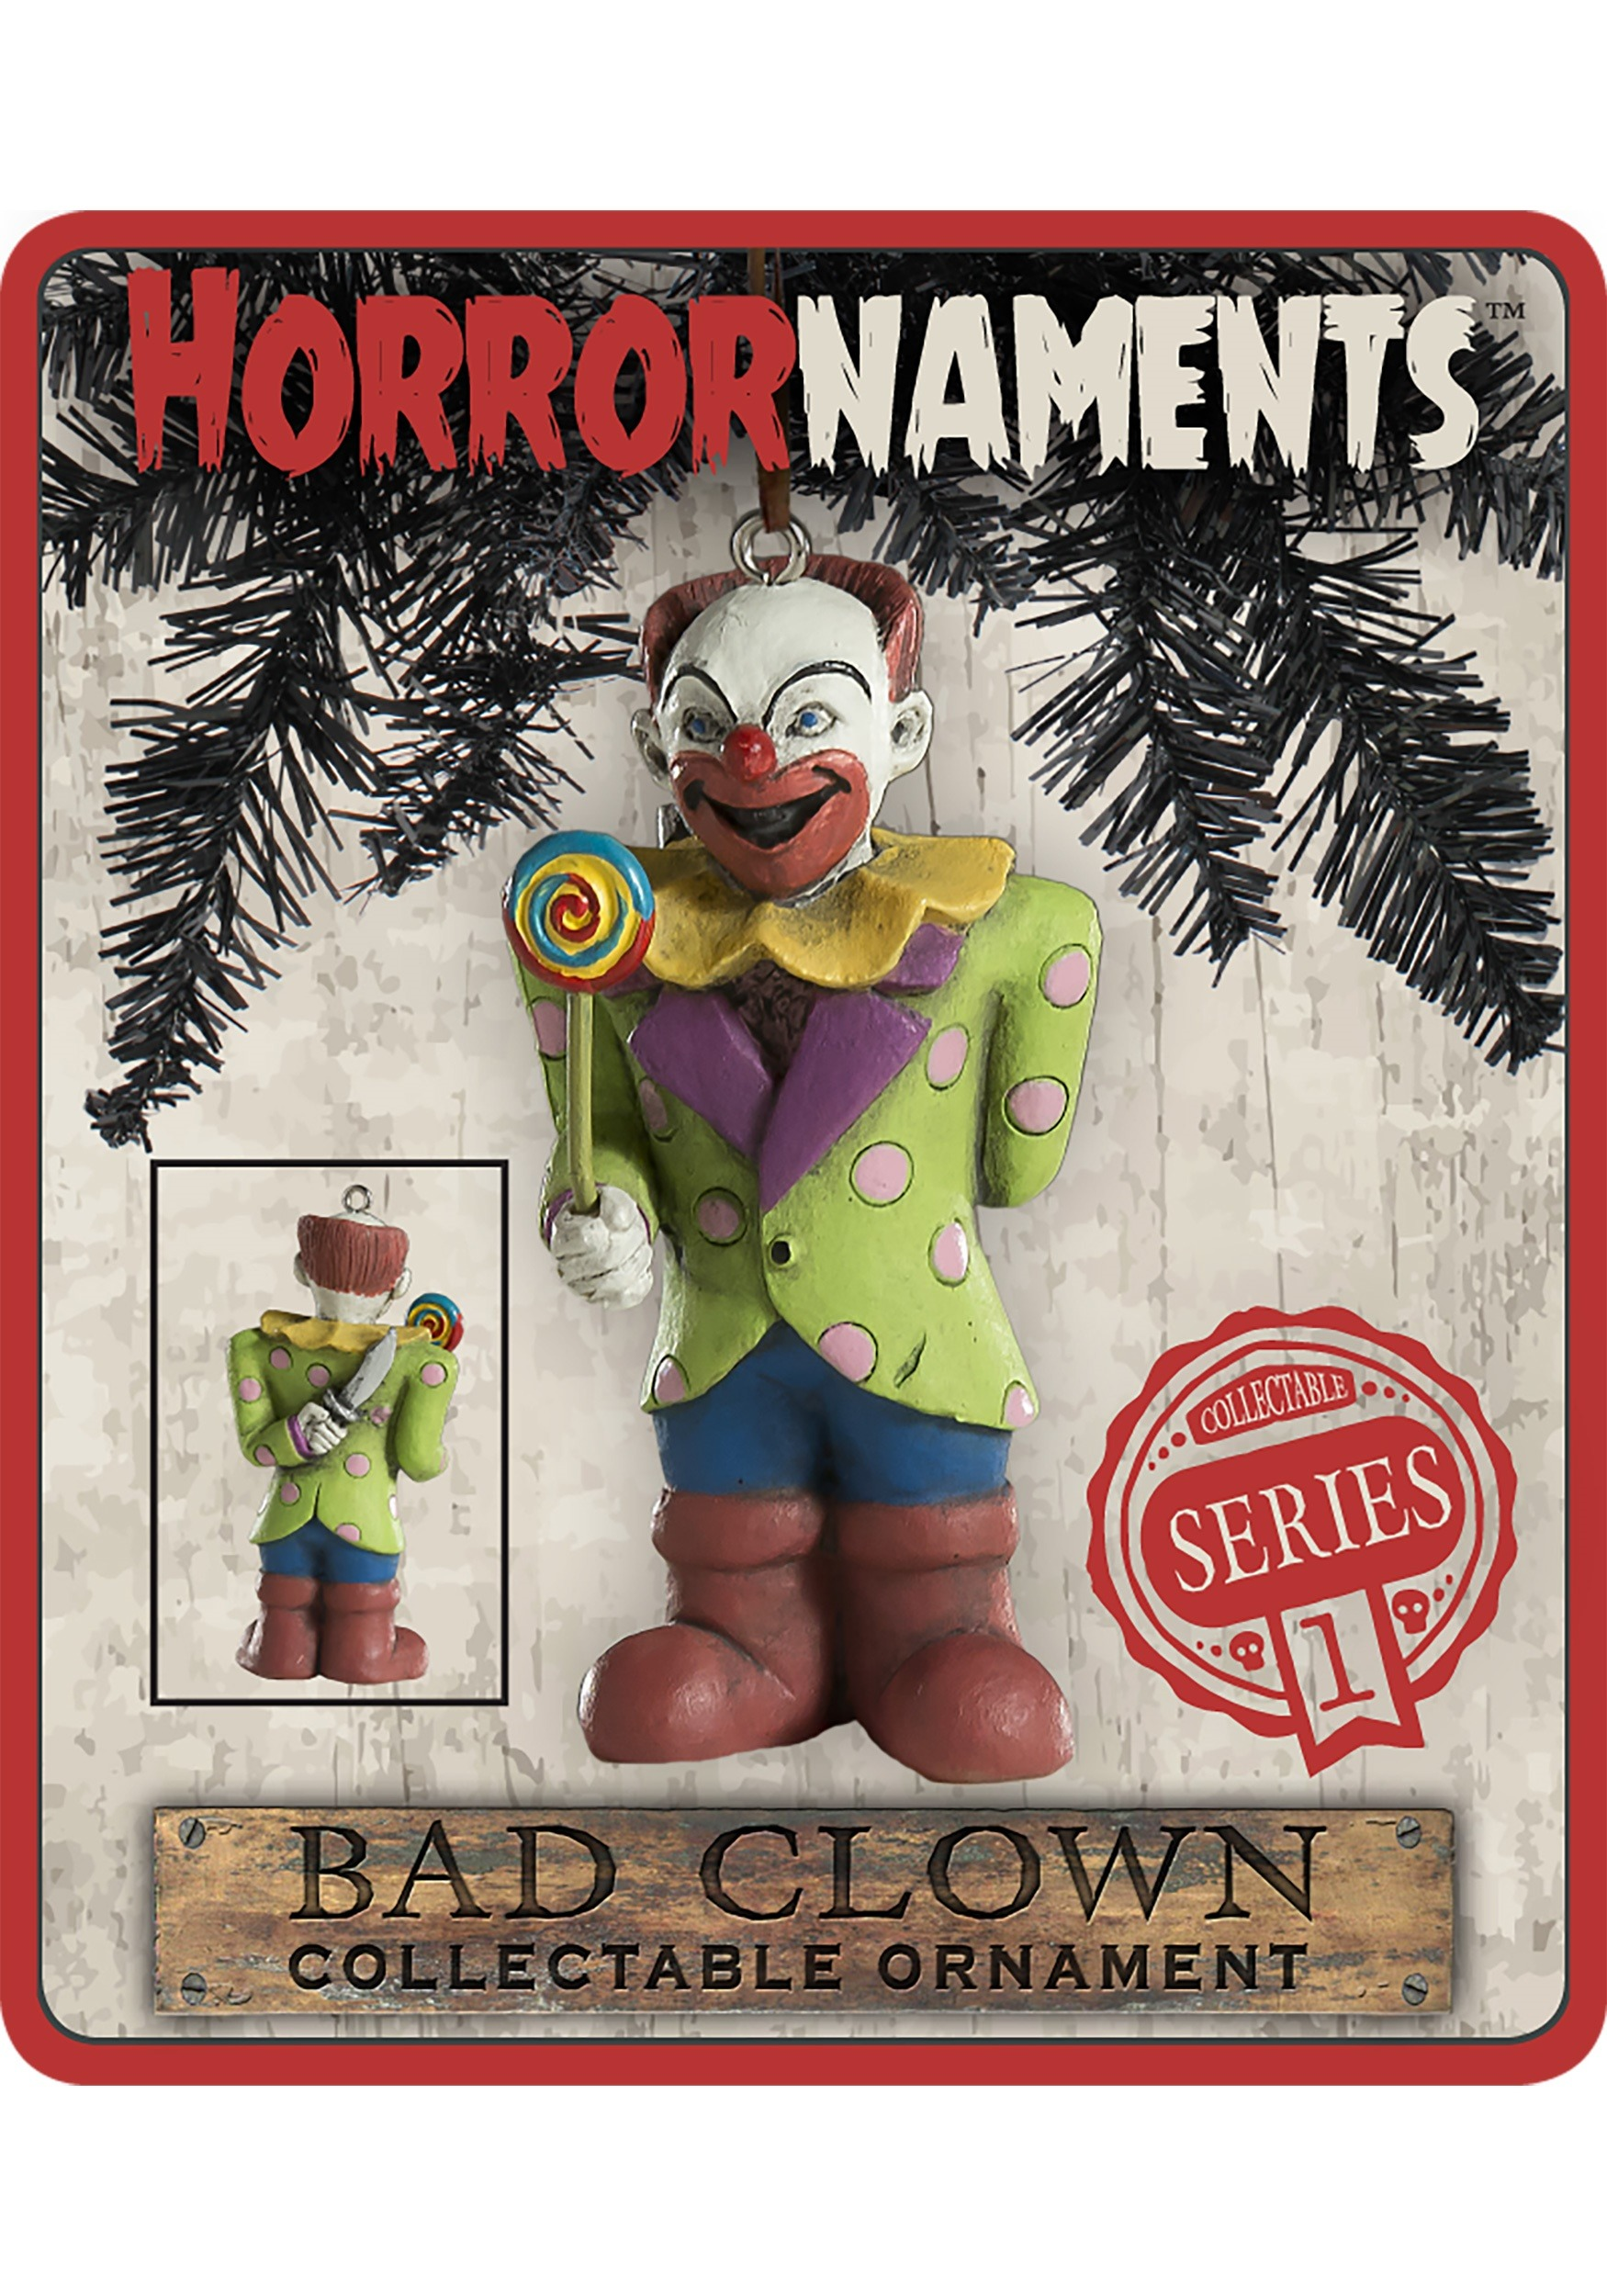 Horrornaments Molded Bad Clown Ornament